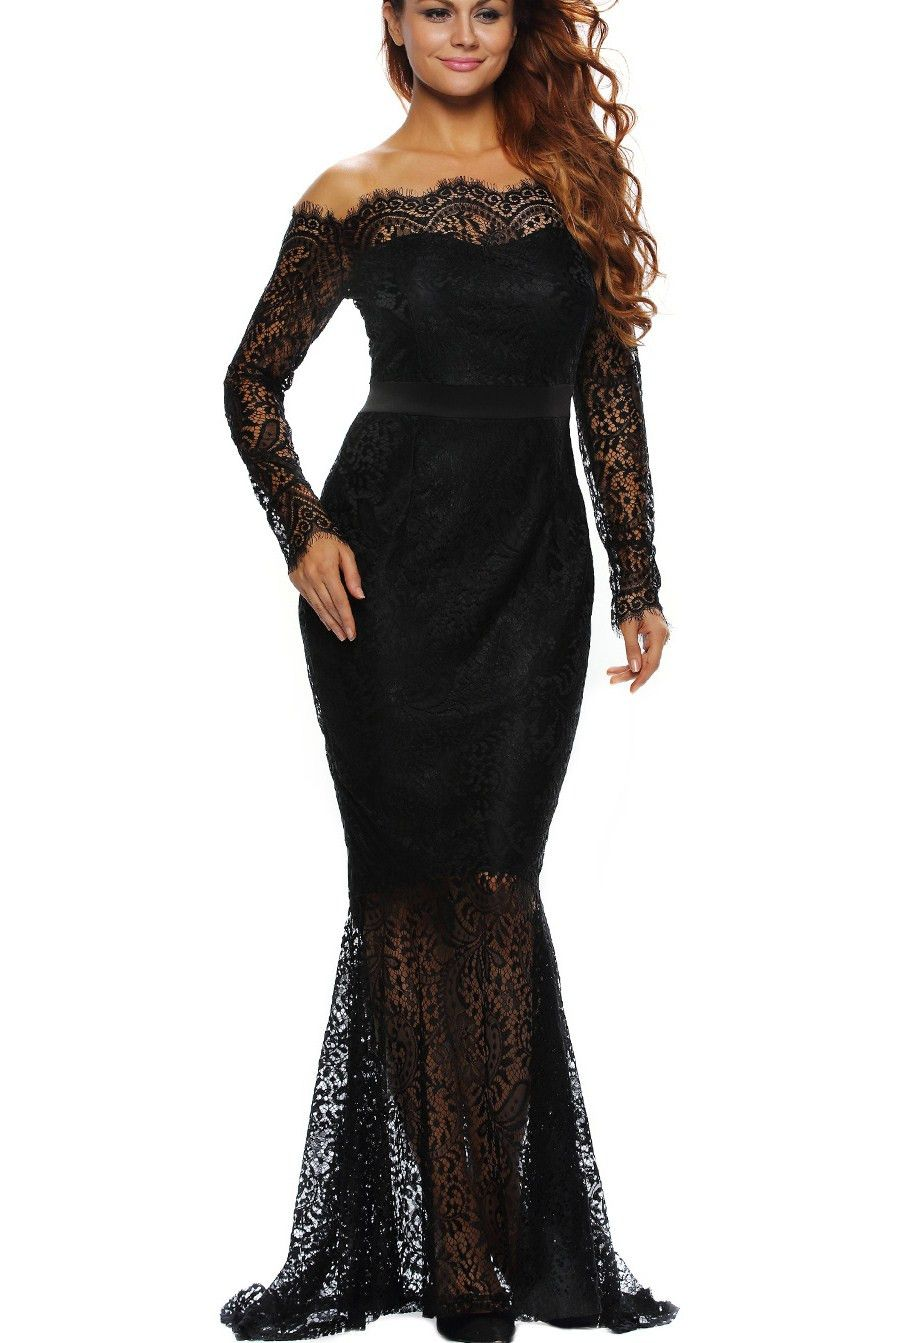 7dcfaab15538e Prix  €20.85 Robes de Soiree Noire Dentelle Sirene Manches Longues Cocktail  Pas Cher www.modebuy.com  Modebuy  Modebuy  Noir  style  mode